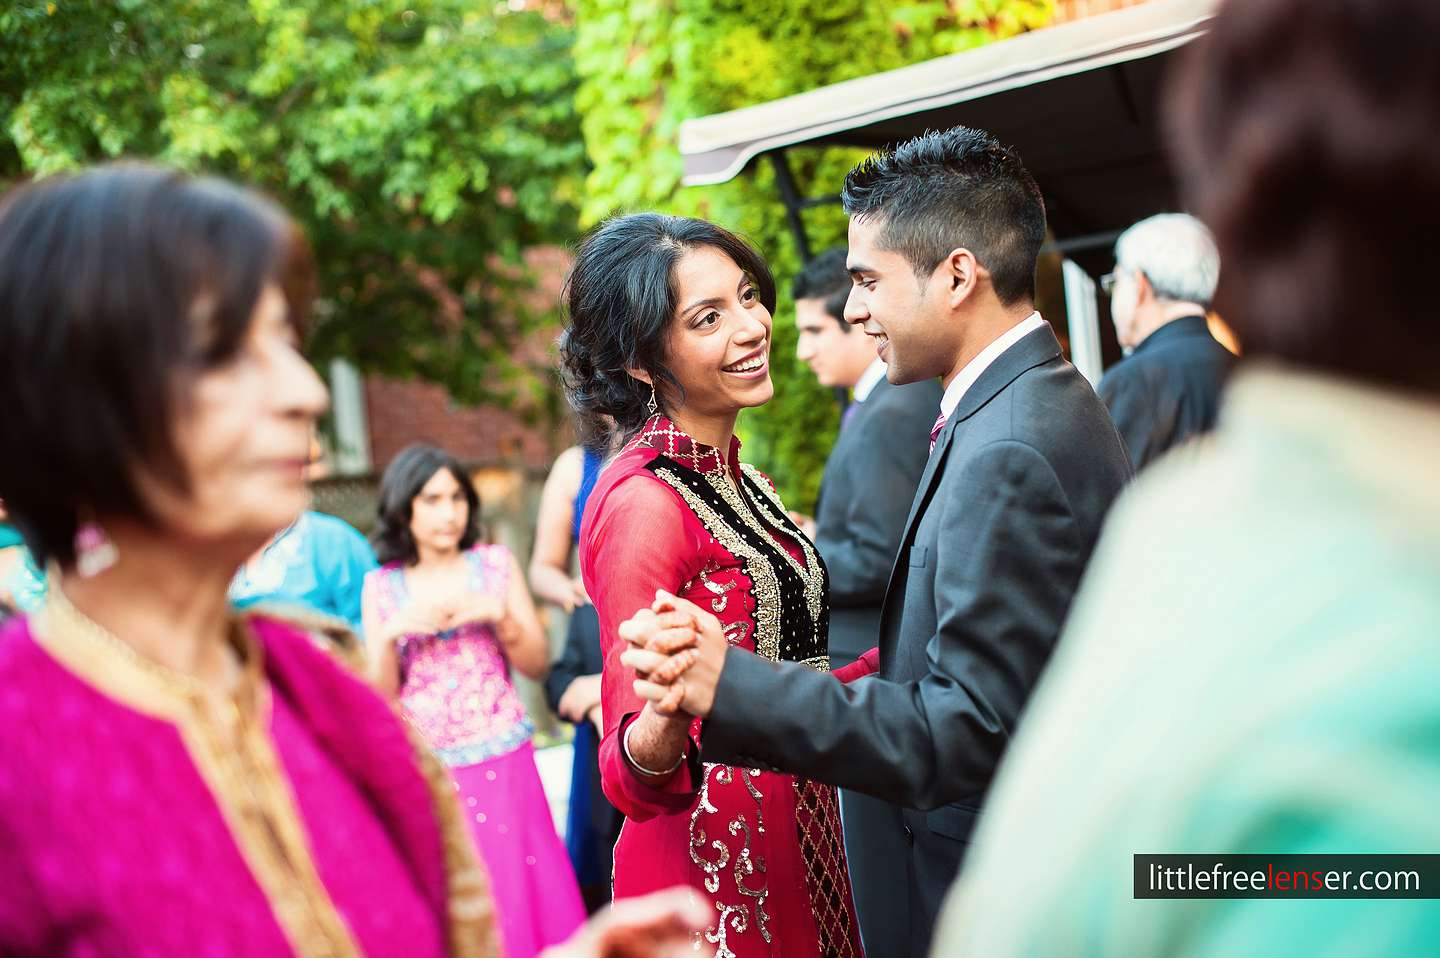 tn_alisha&ayaz_engagementparty_15